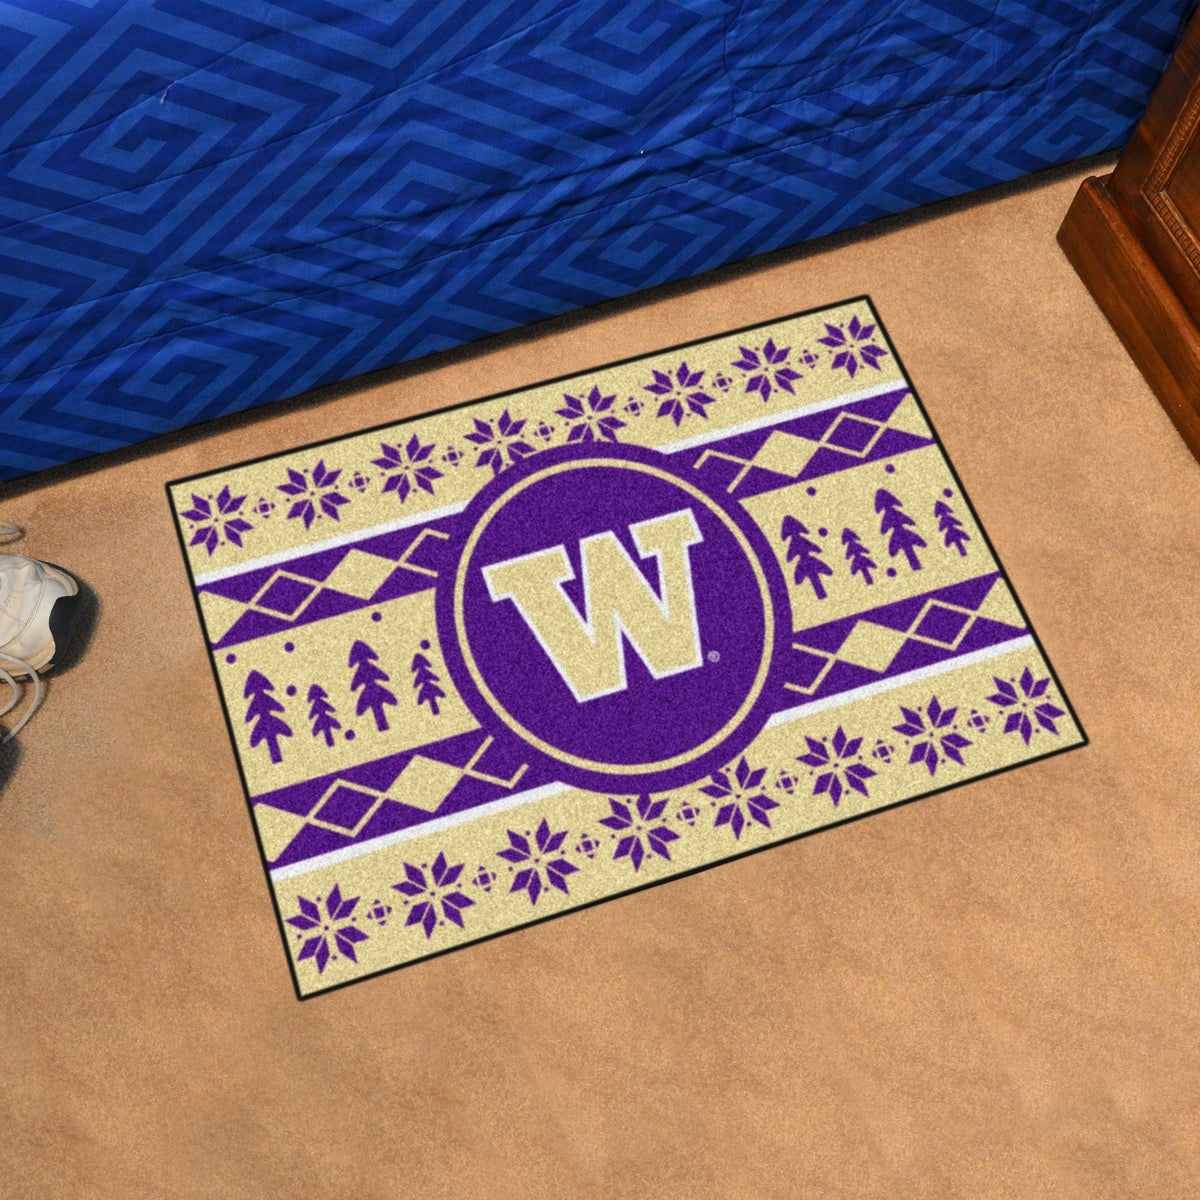 Collegiate - Holiday Sweater Starter Mat Collegiate Mats, Rectangular Mats, Holiday Sweater Starter Mat, Collegiate, Home Fan Mats Washington